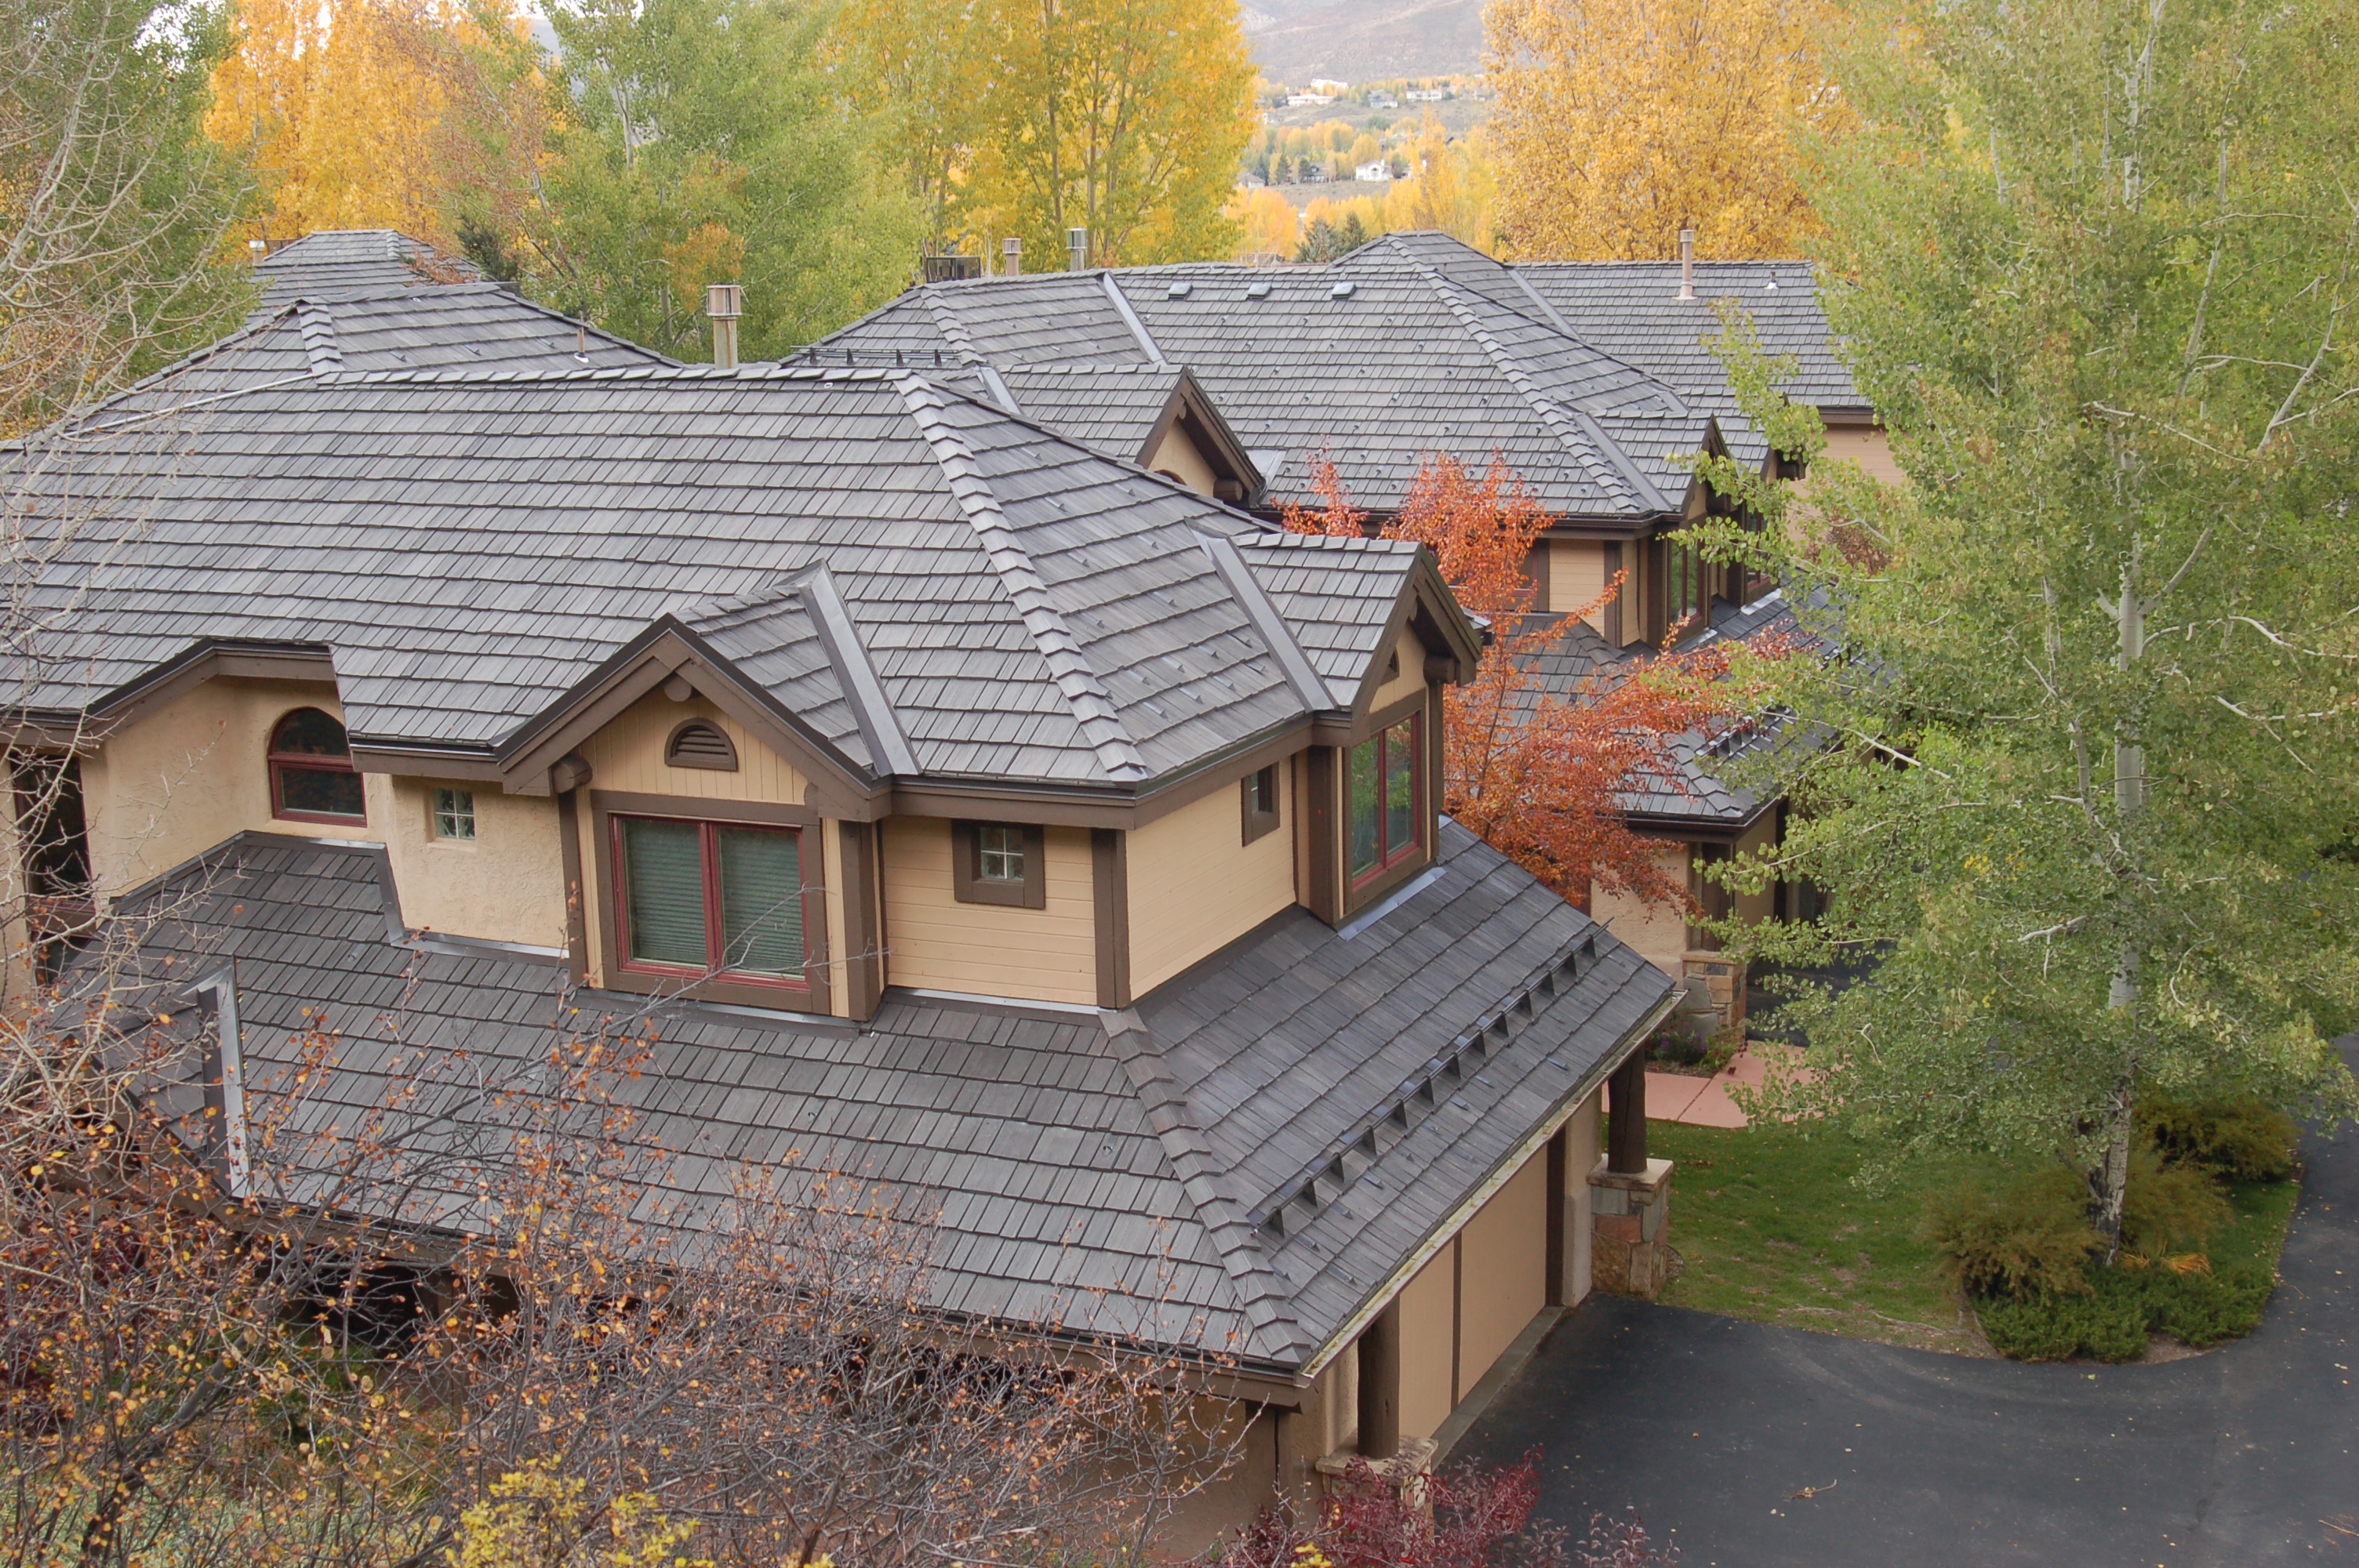 Increasing number of condo communities choose davinci for Davinci roofscapes cost